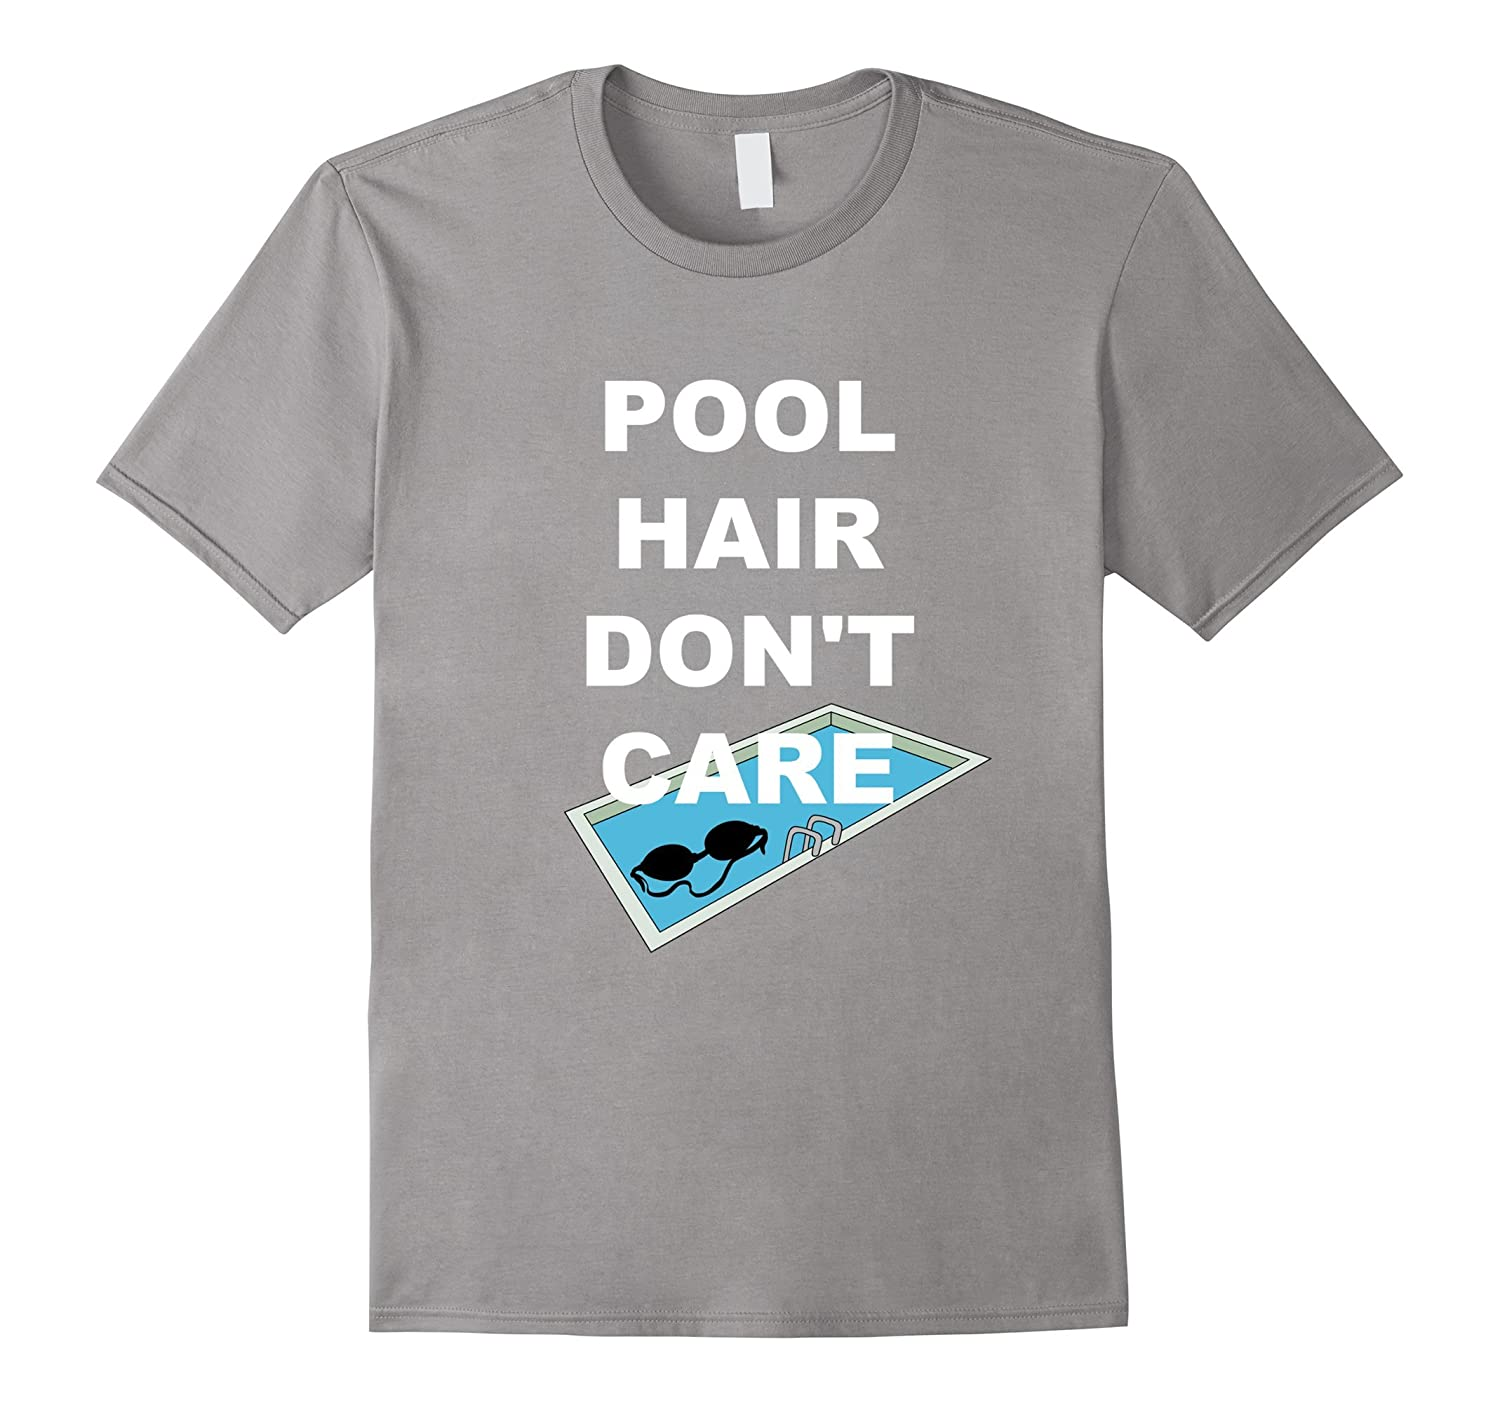 Pool hair dont care funny swim shirts for men women kids for Silly shirts for men